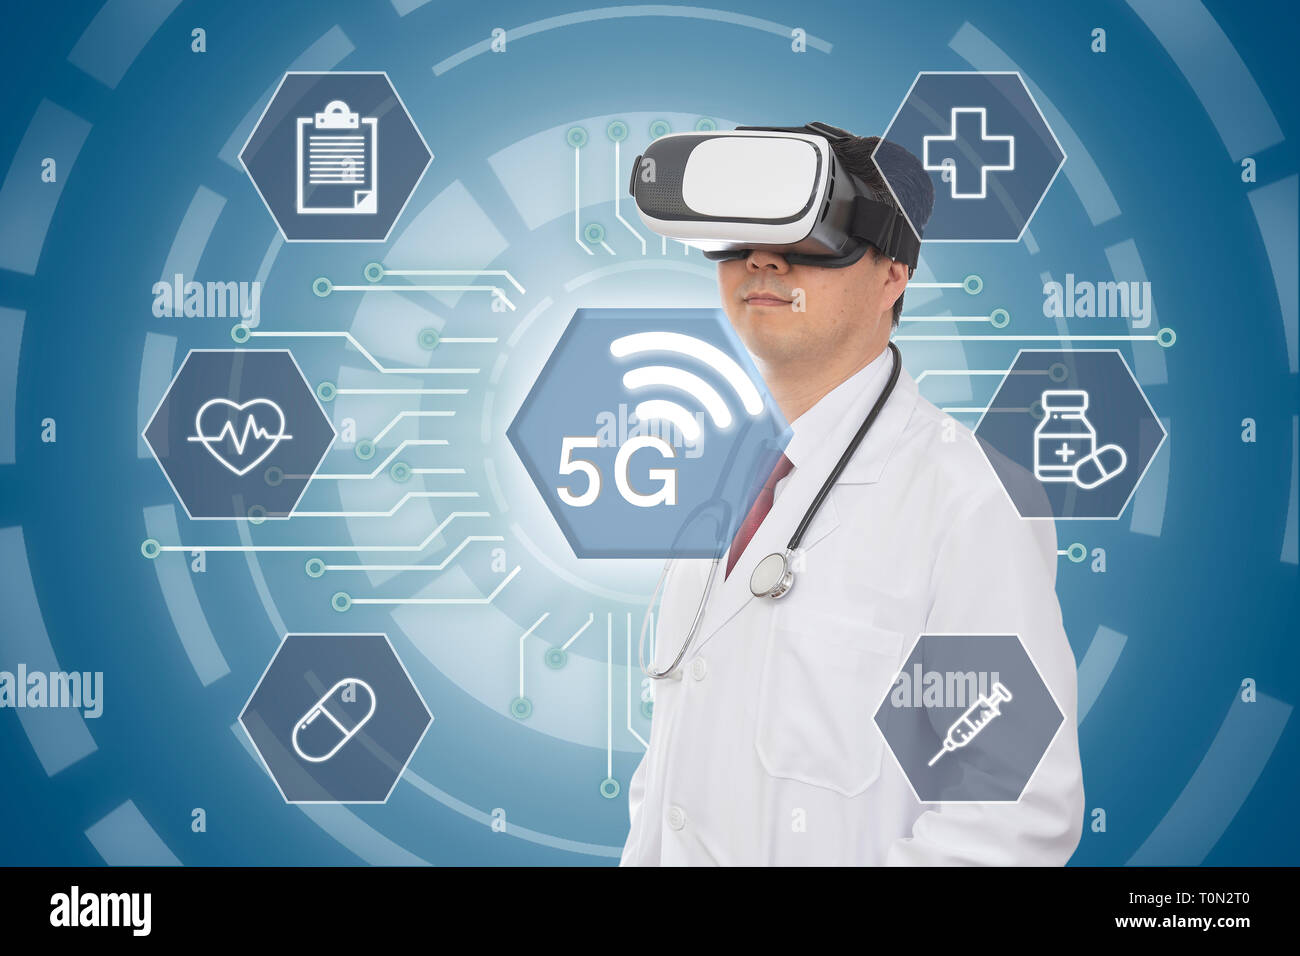 Male doctor wearing virtual reality glasses. 5G Medical Concept. Computer Graphic. - Stock Image